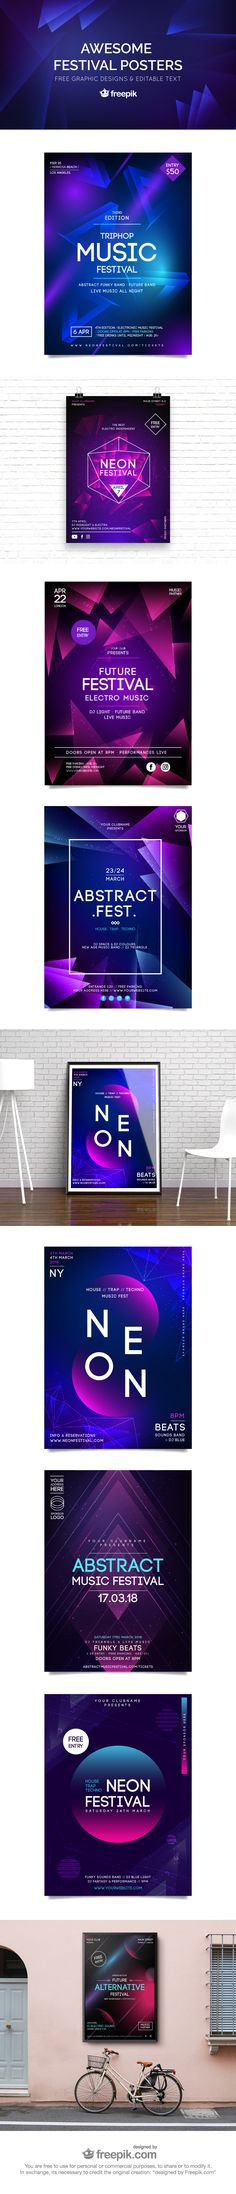 Free Awesome Festival Poster Templates #freebie #freepostertemplate #posterdesign